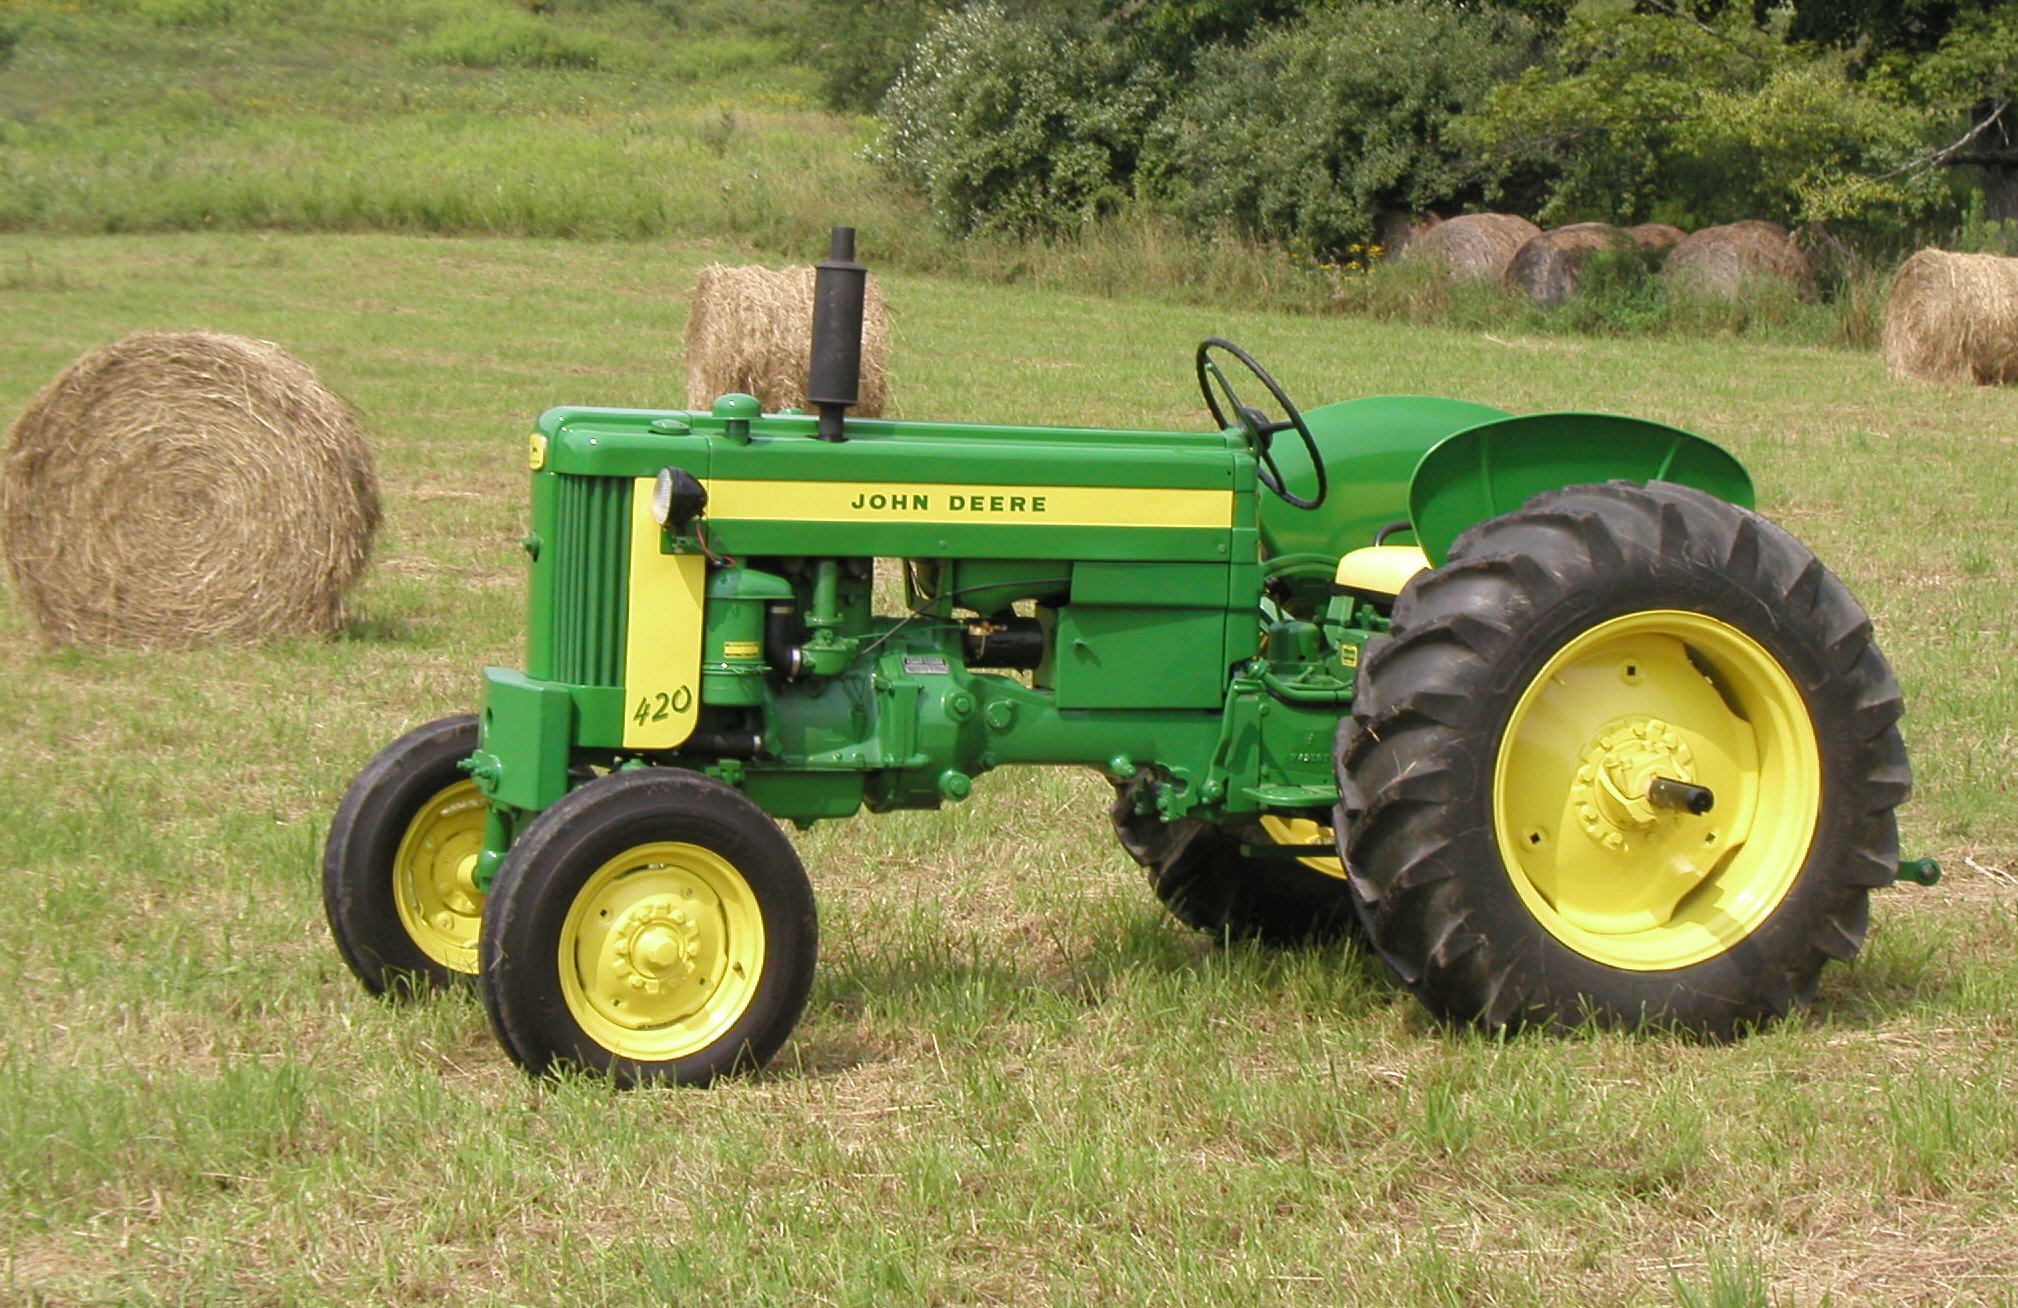 The Model 40 - The John Deere Model 420 Tractors and Crawlers on john deere 111h wiring-diagram, john deere 4010 wiring-diagram, john deere lx255 wiring-diagram, john deere 145 wiring-diagram, john deere 322 wiring-diagram, john deere 320 wiring-diagram, john deere gt275 wiring-diagram, john deere l110 wiring-diagram, john deere z225 wiring-diagram, john deere 4440 wiring-diagram, john deere 425 wiring-diagram, john deere b wiring-diagram, john deere rx75 wiring-diagram, john deere m wiring-diagram, john deere 185 wiring-diagram, john deere 420 wiring-diagram, john deere 325 wiring-diagram, john deere 318 wiring-diagram, john deere 345 wiring-diagram, john deere 155c wiring-diagram,